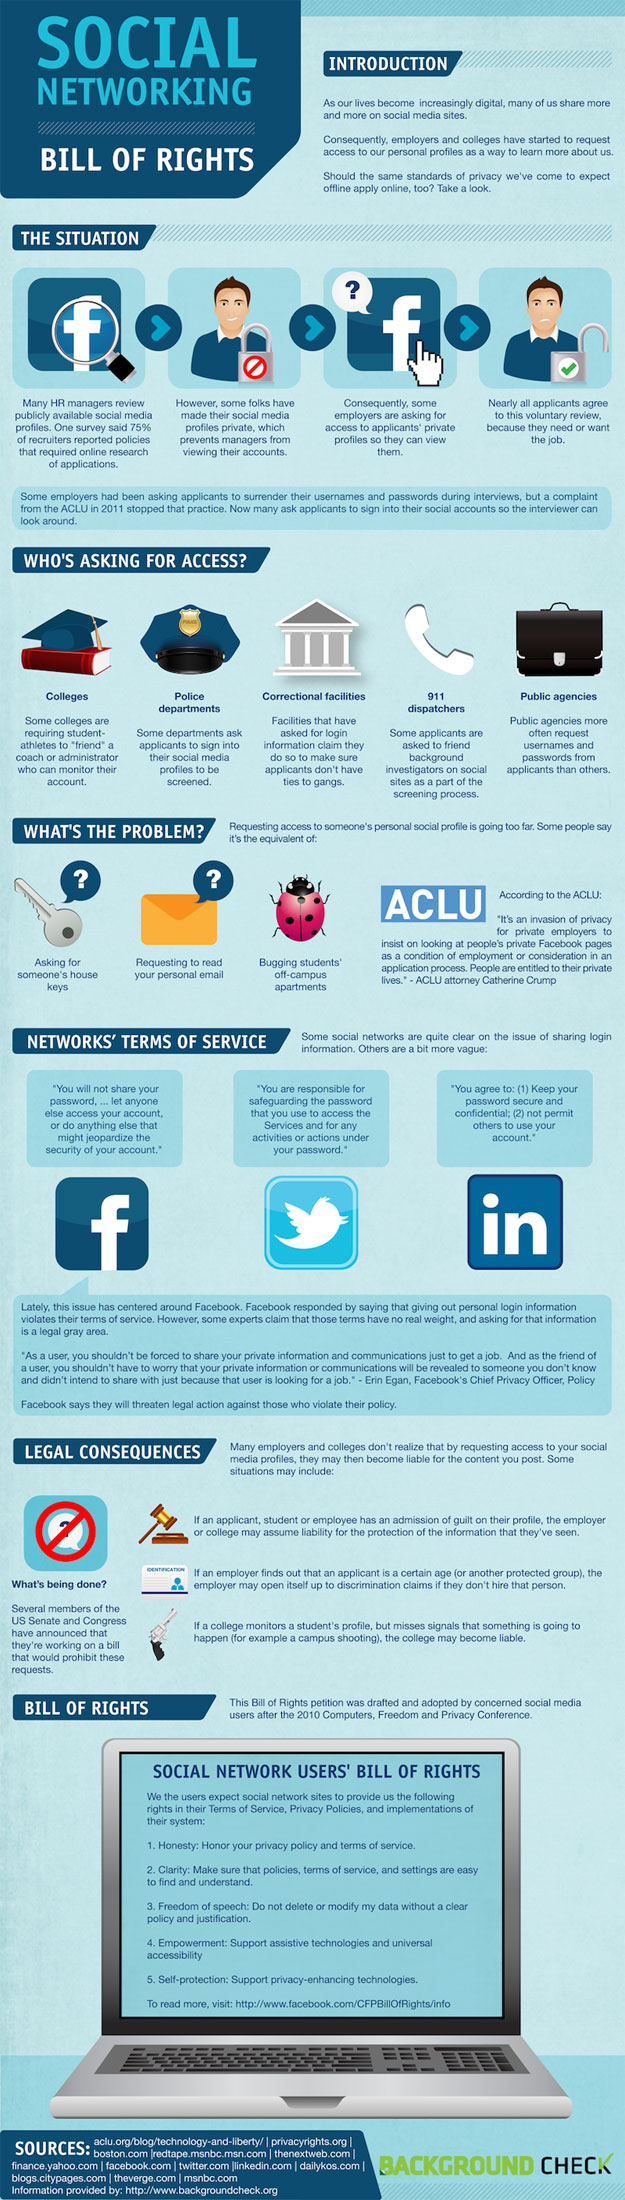 A Social Networking Bill Of Rights [Infographic]